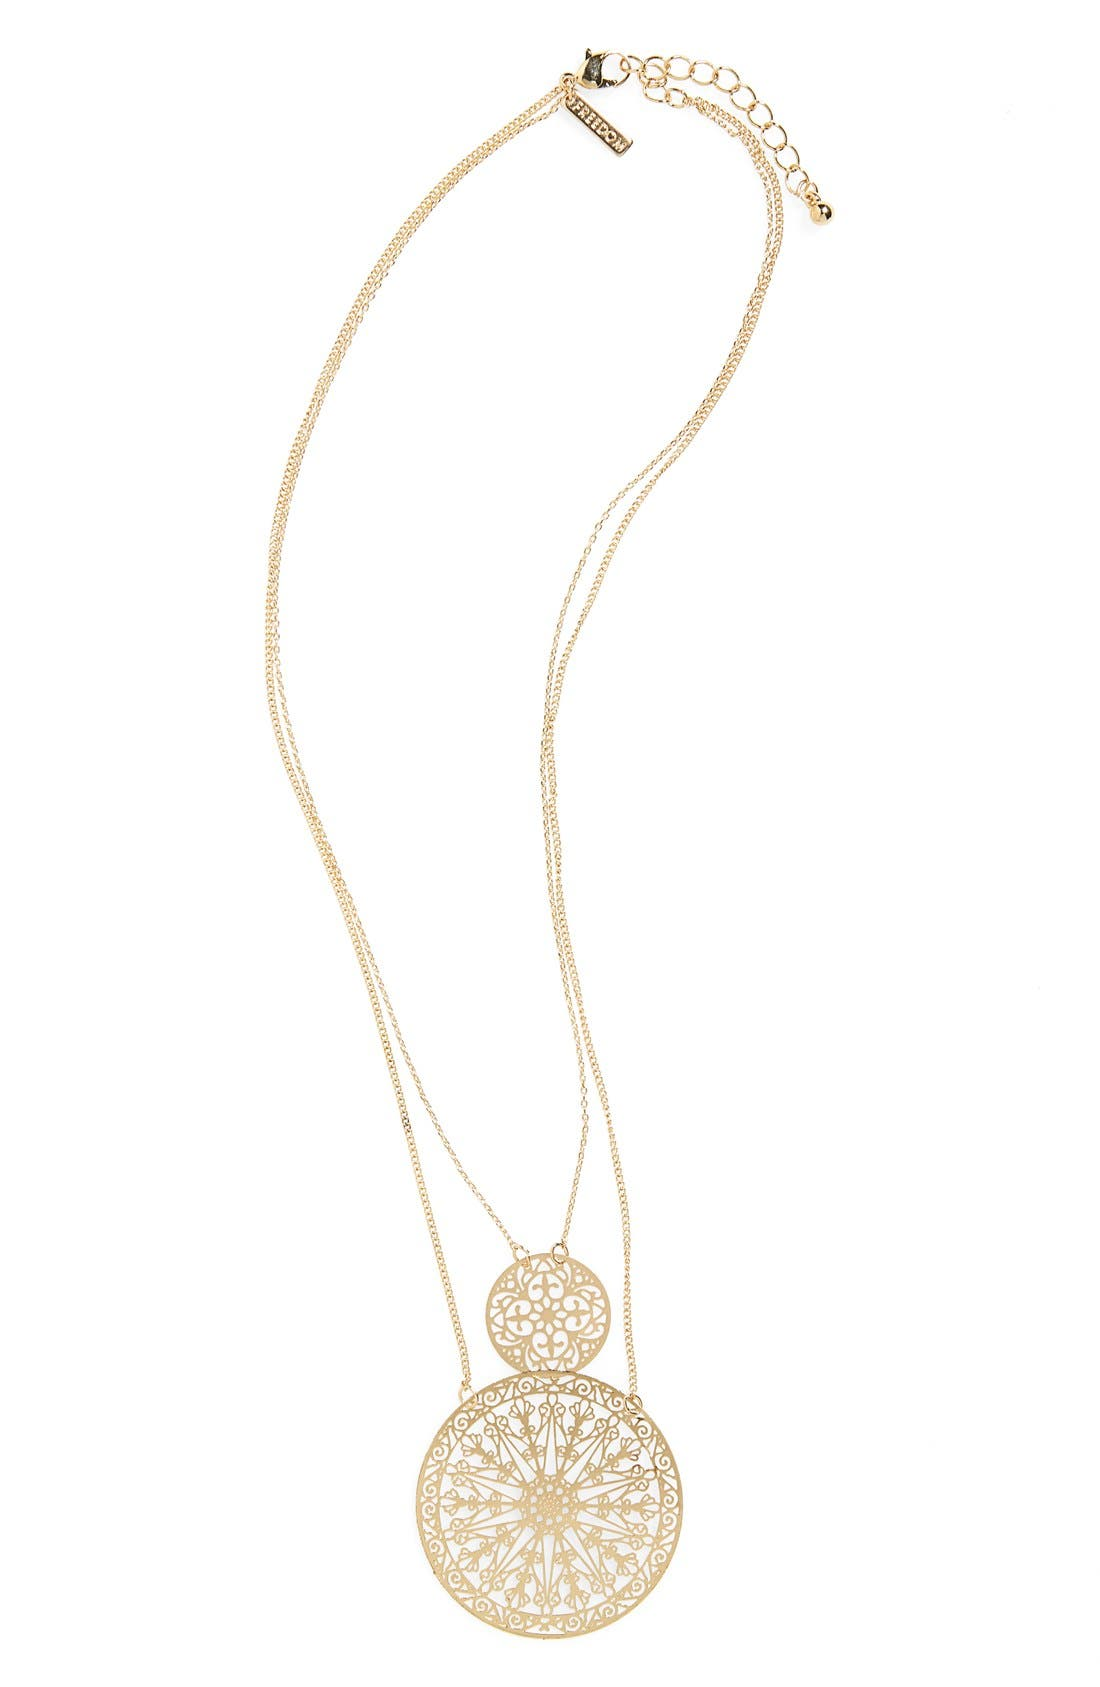 Alternate Image 1 Selected - Topshop Cutout Pendant Layering Necklace